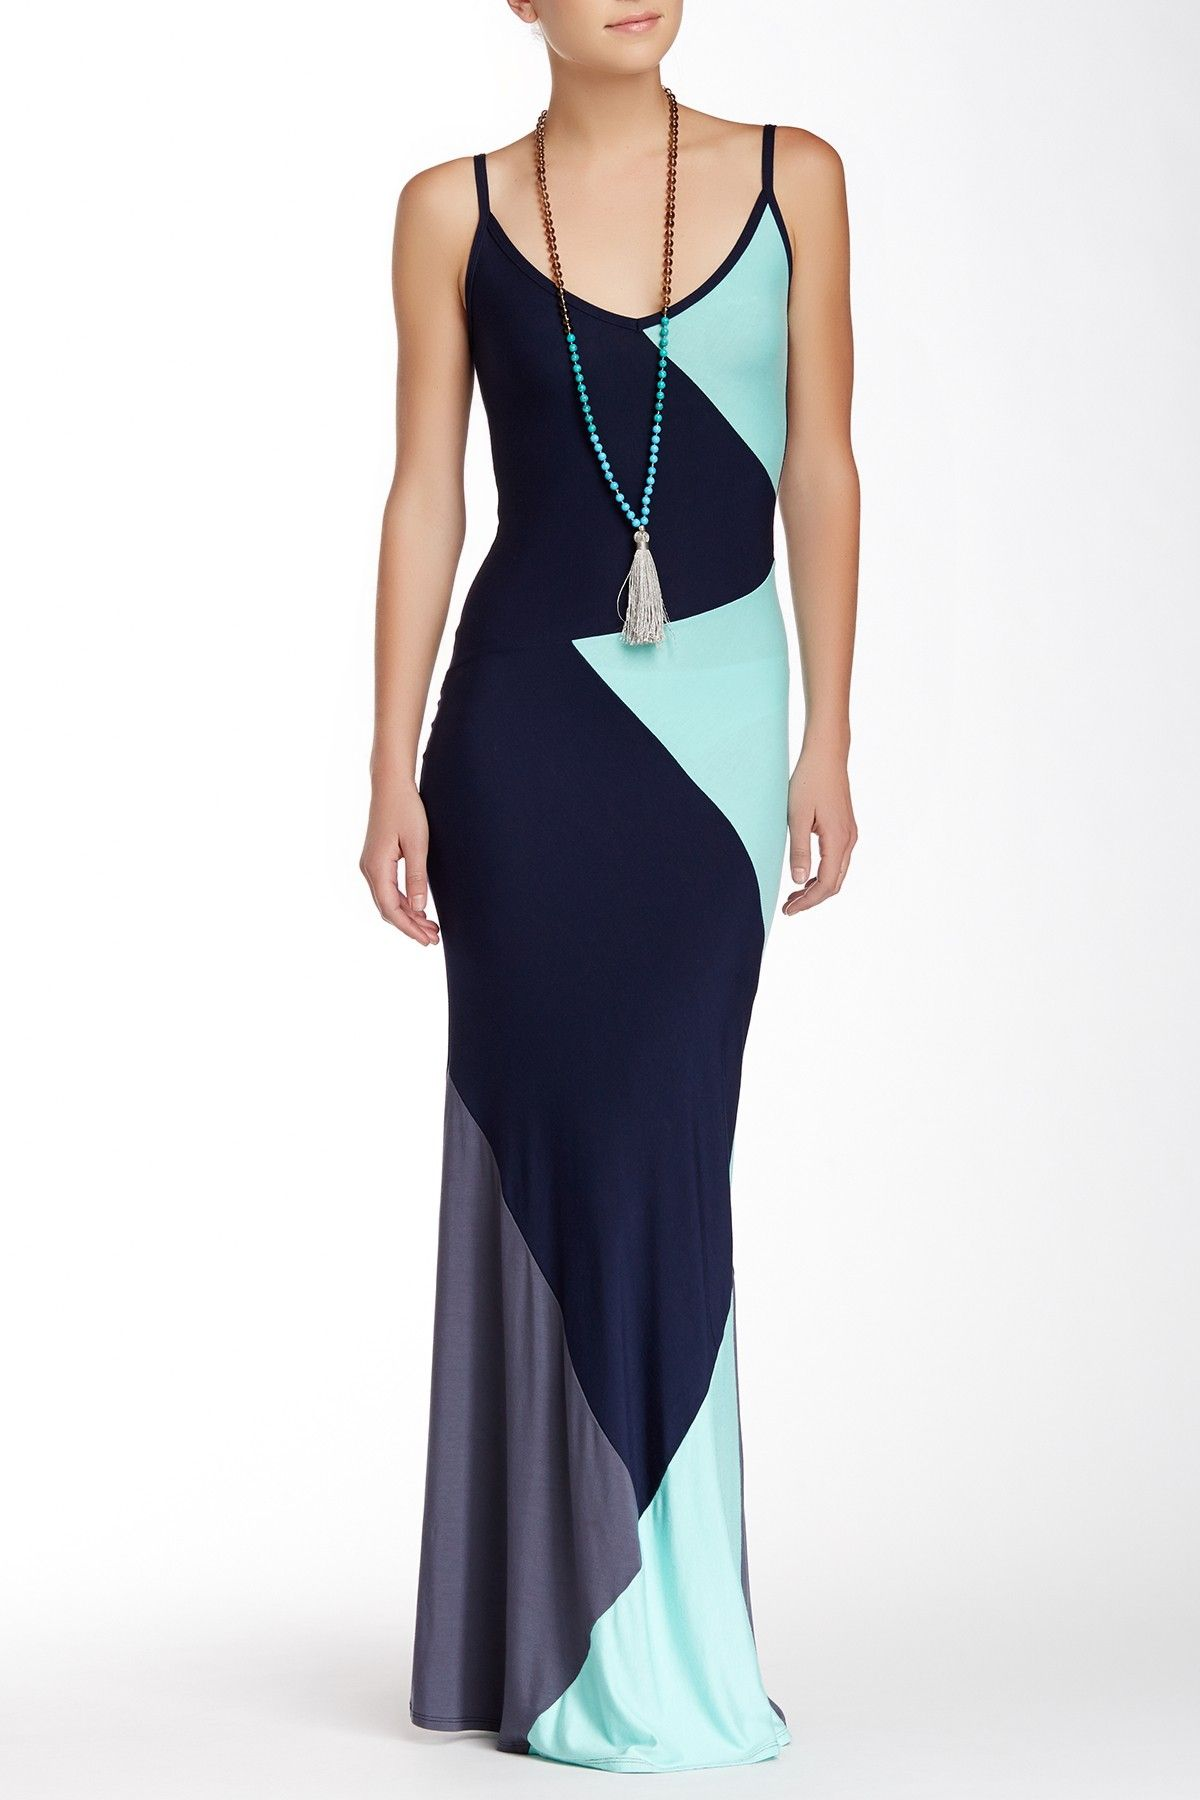 $59.97 $168.00  64% Off Colorblock Maxi Dress by Go Couture on @HauteLook